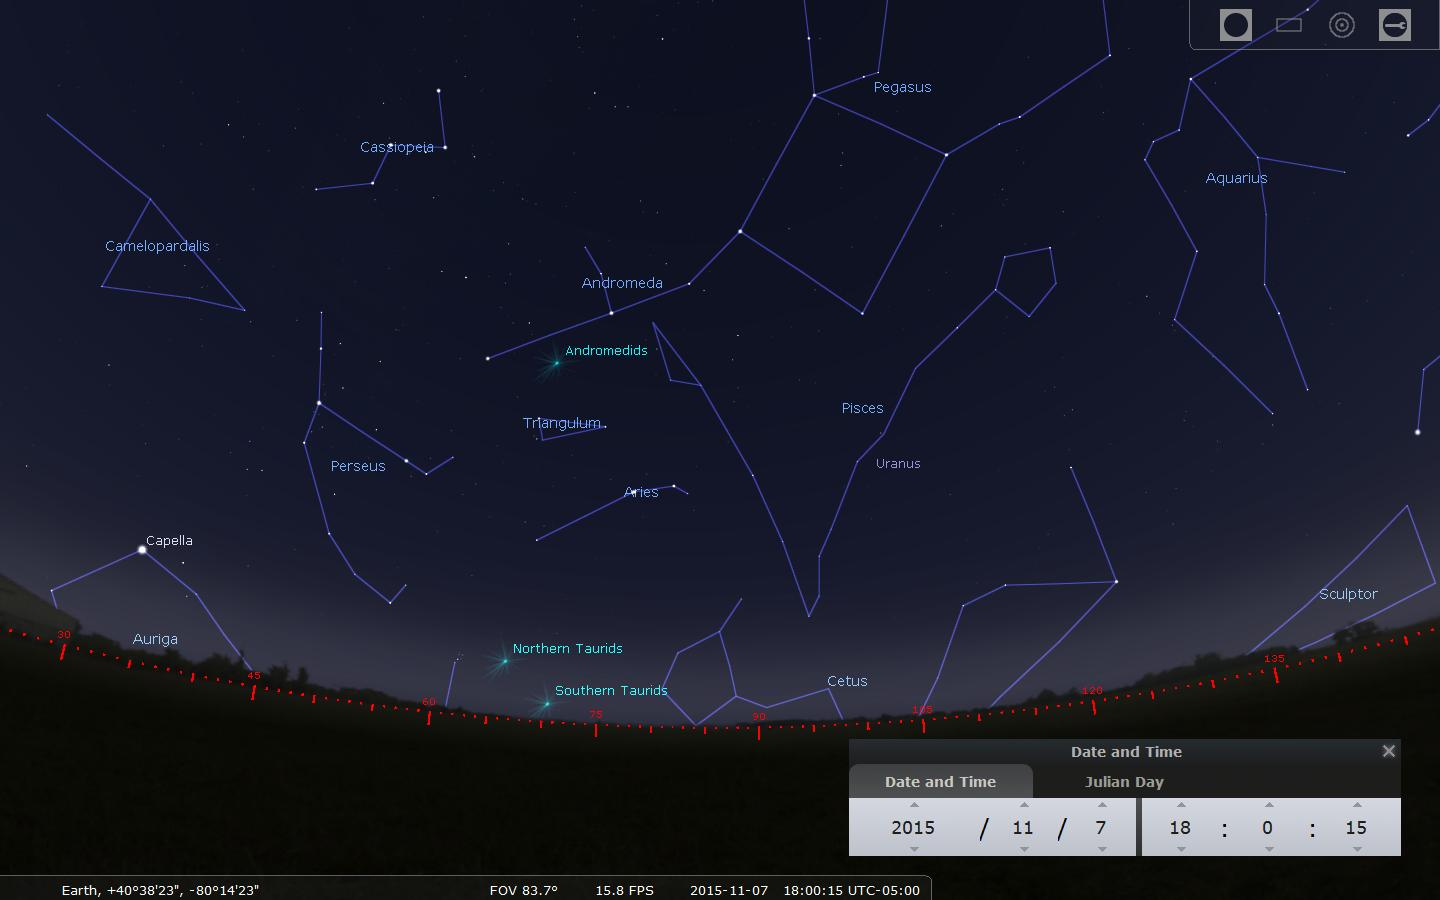 Radiants (apparent origins) of many November meteor showers are shown above the eastern horizon along with familiar constellations and bright stars in this Stellarium screen capture.